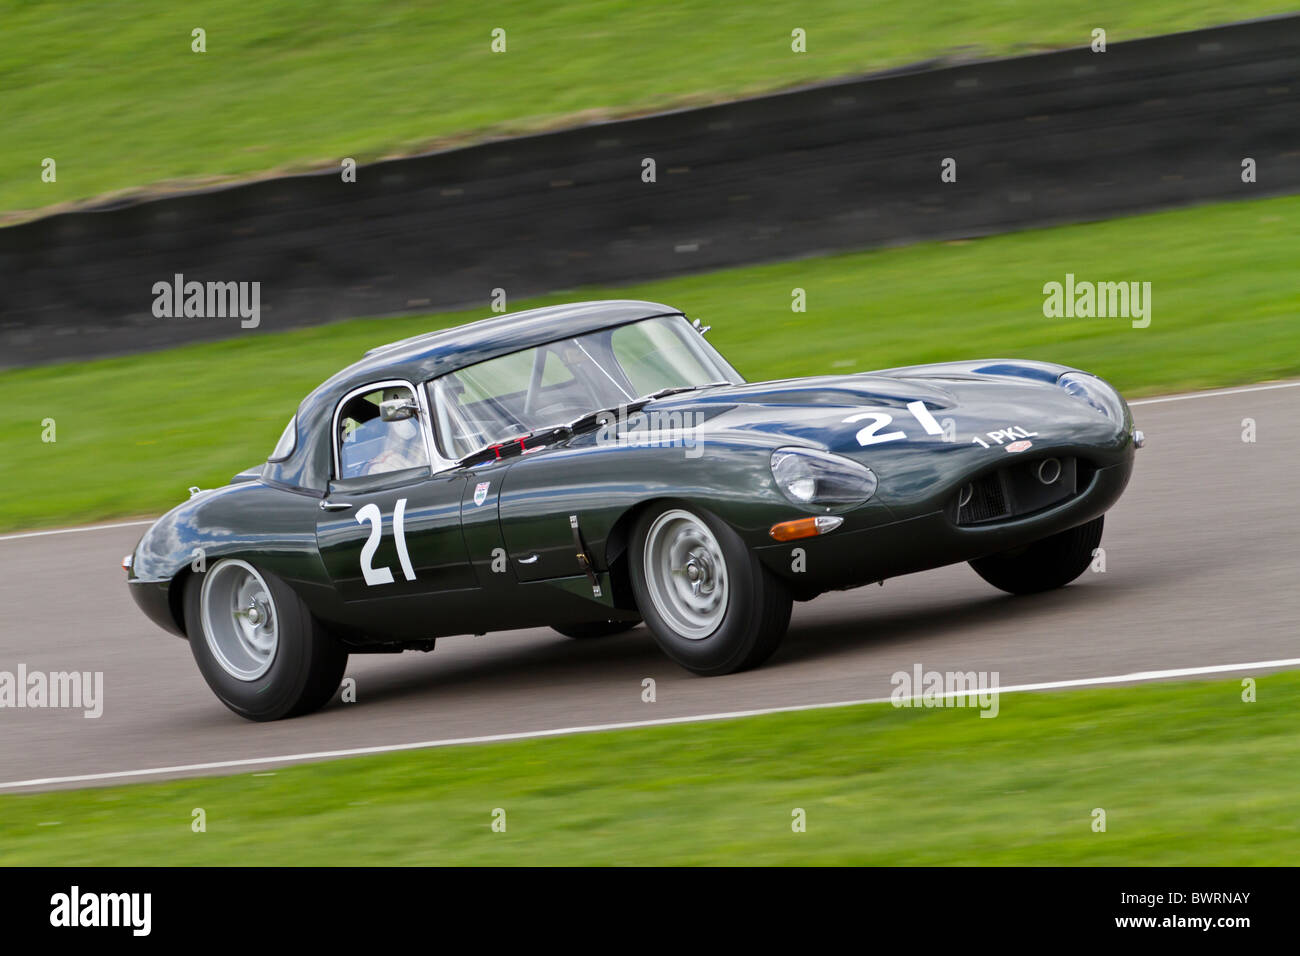 1961 Jaguar E-Type during the RAC TT Celebration race. 2010 Goodwood Revival meeting, Sussex, England, UK. - Stock Image